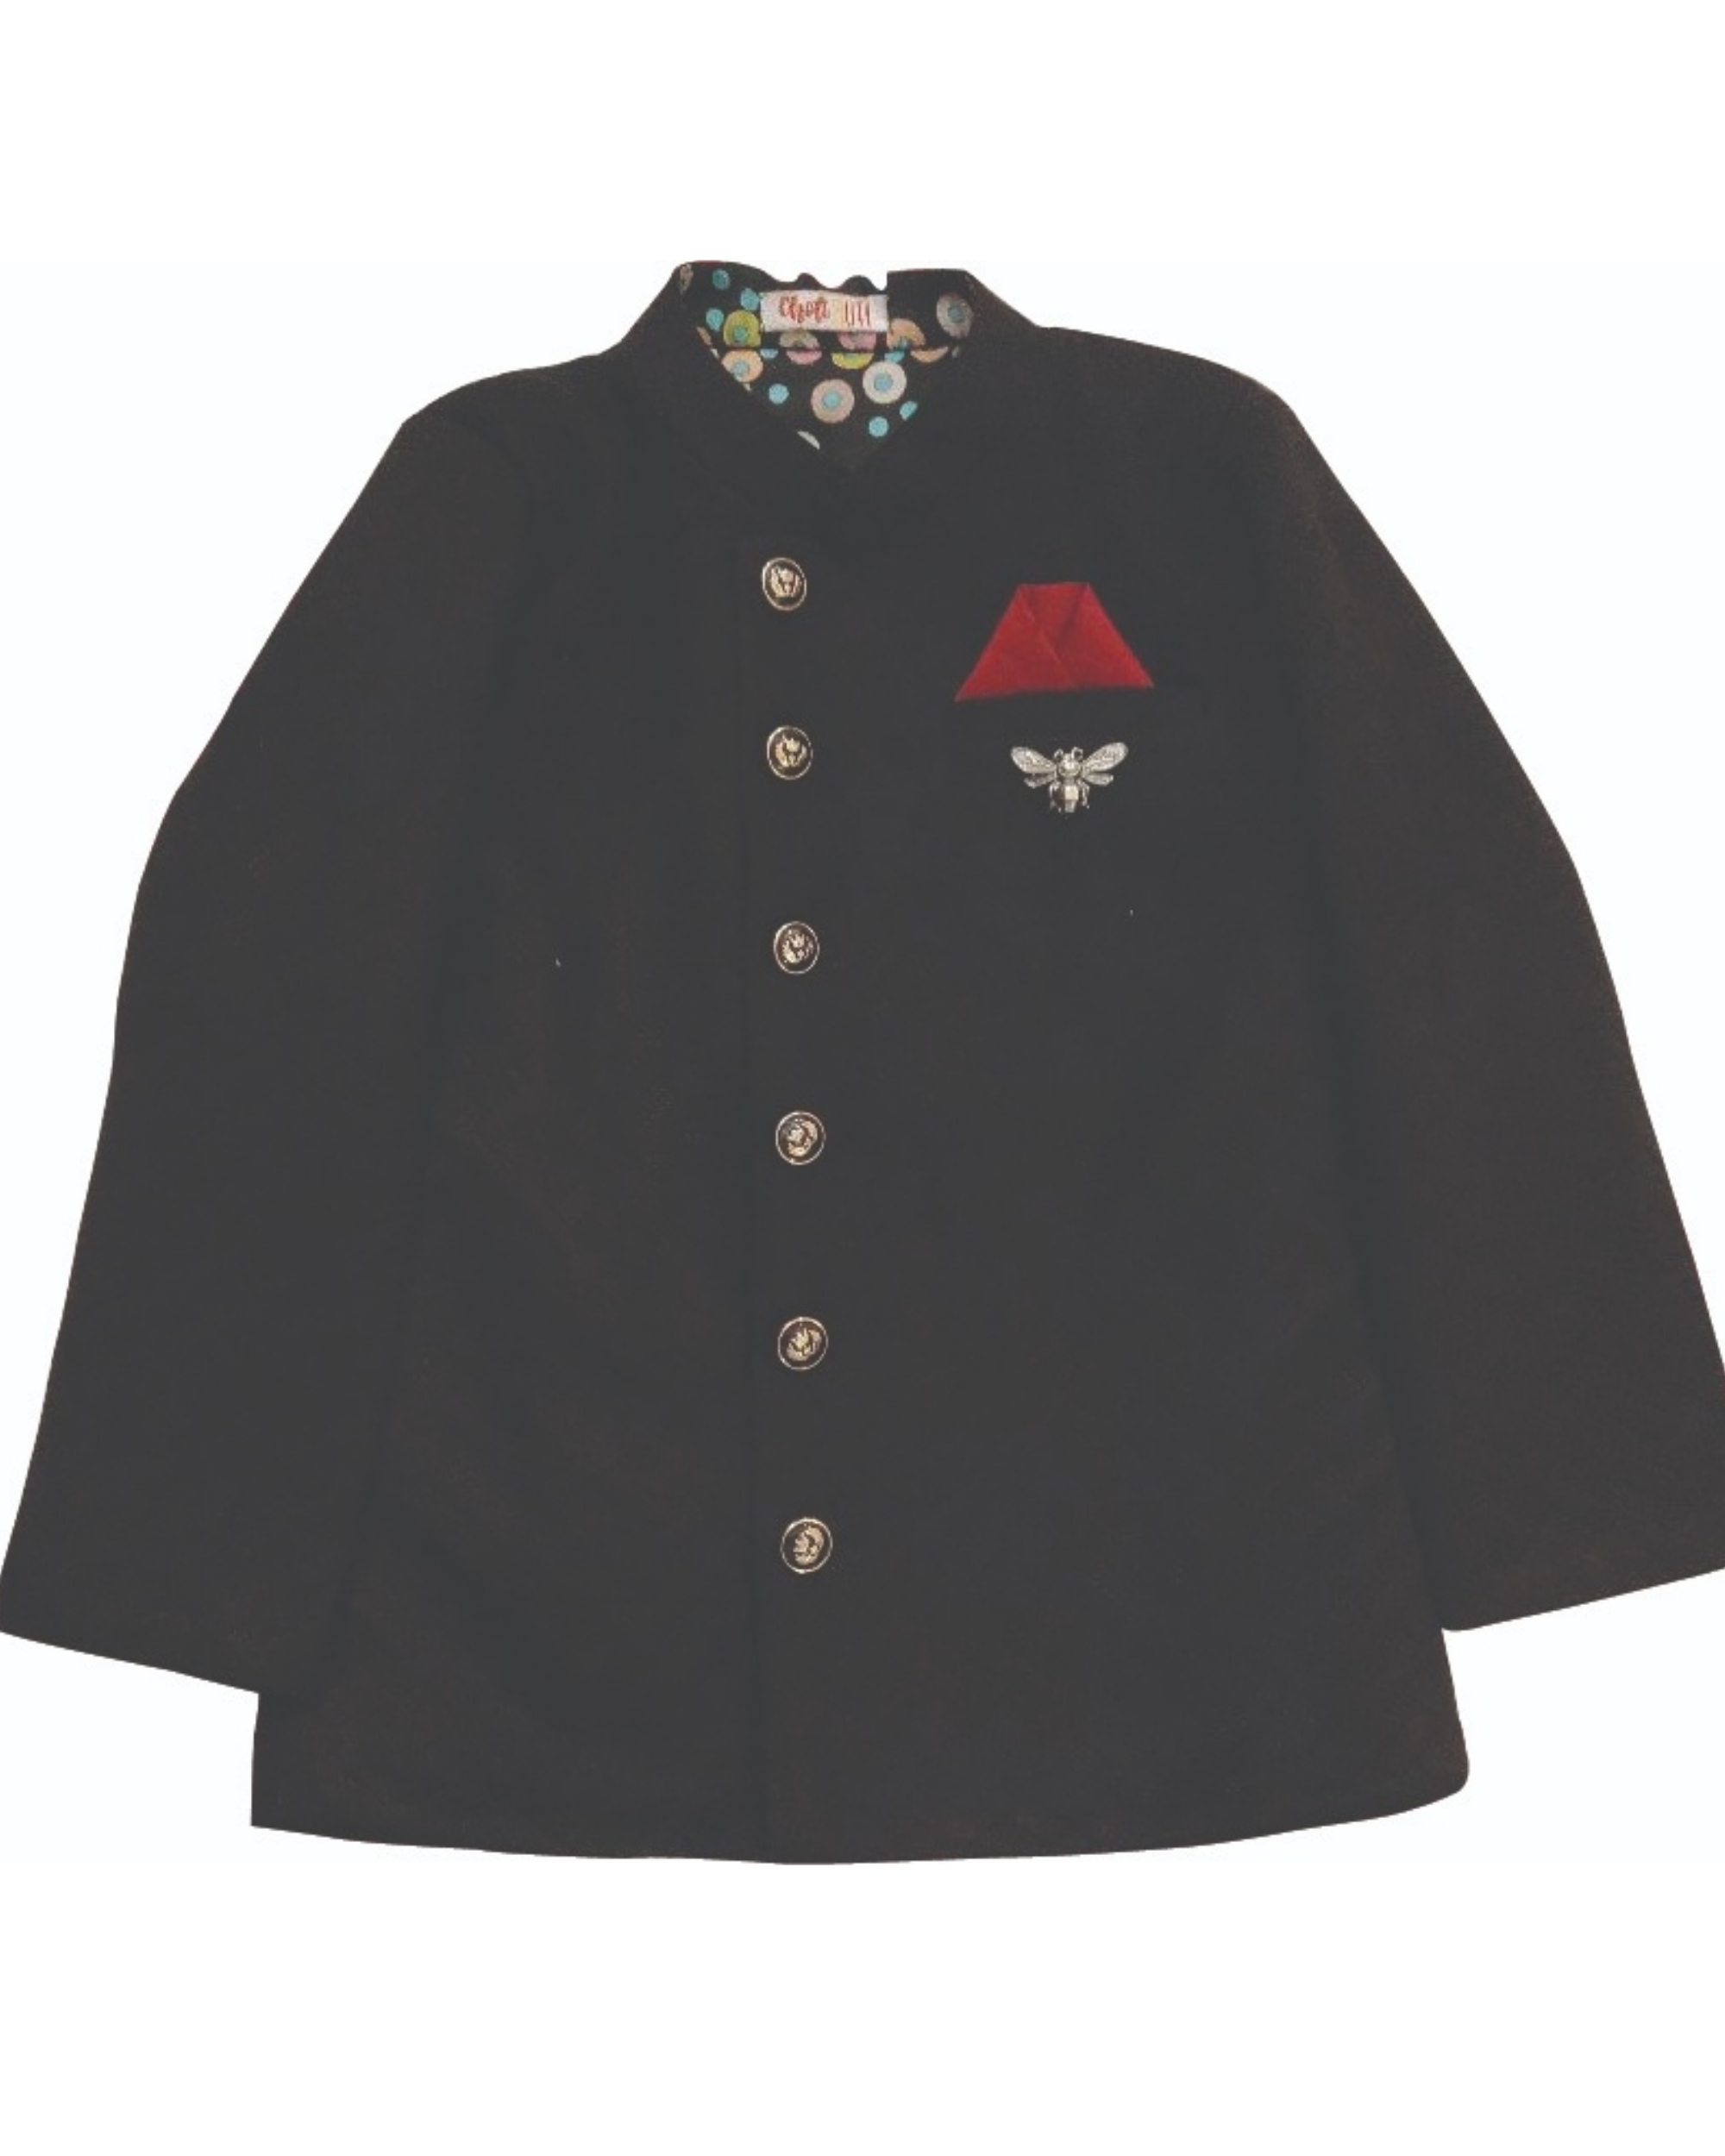 Bandh gala black jacket